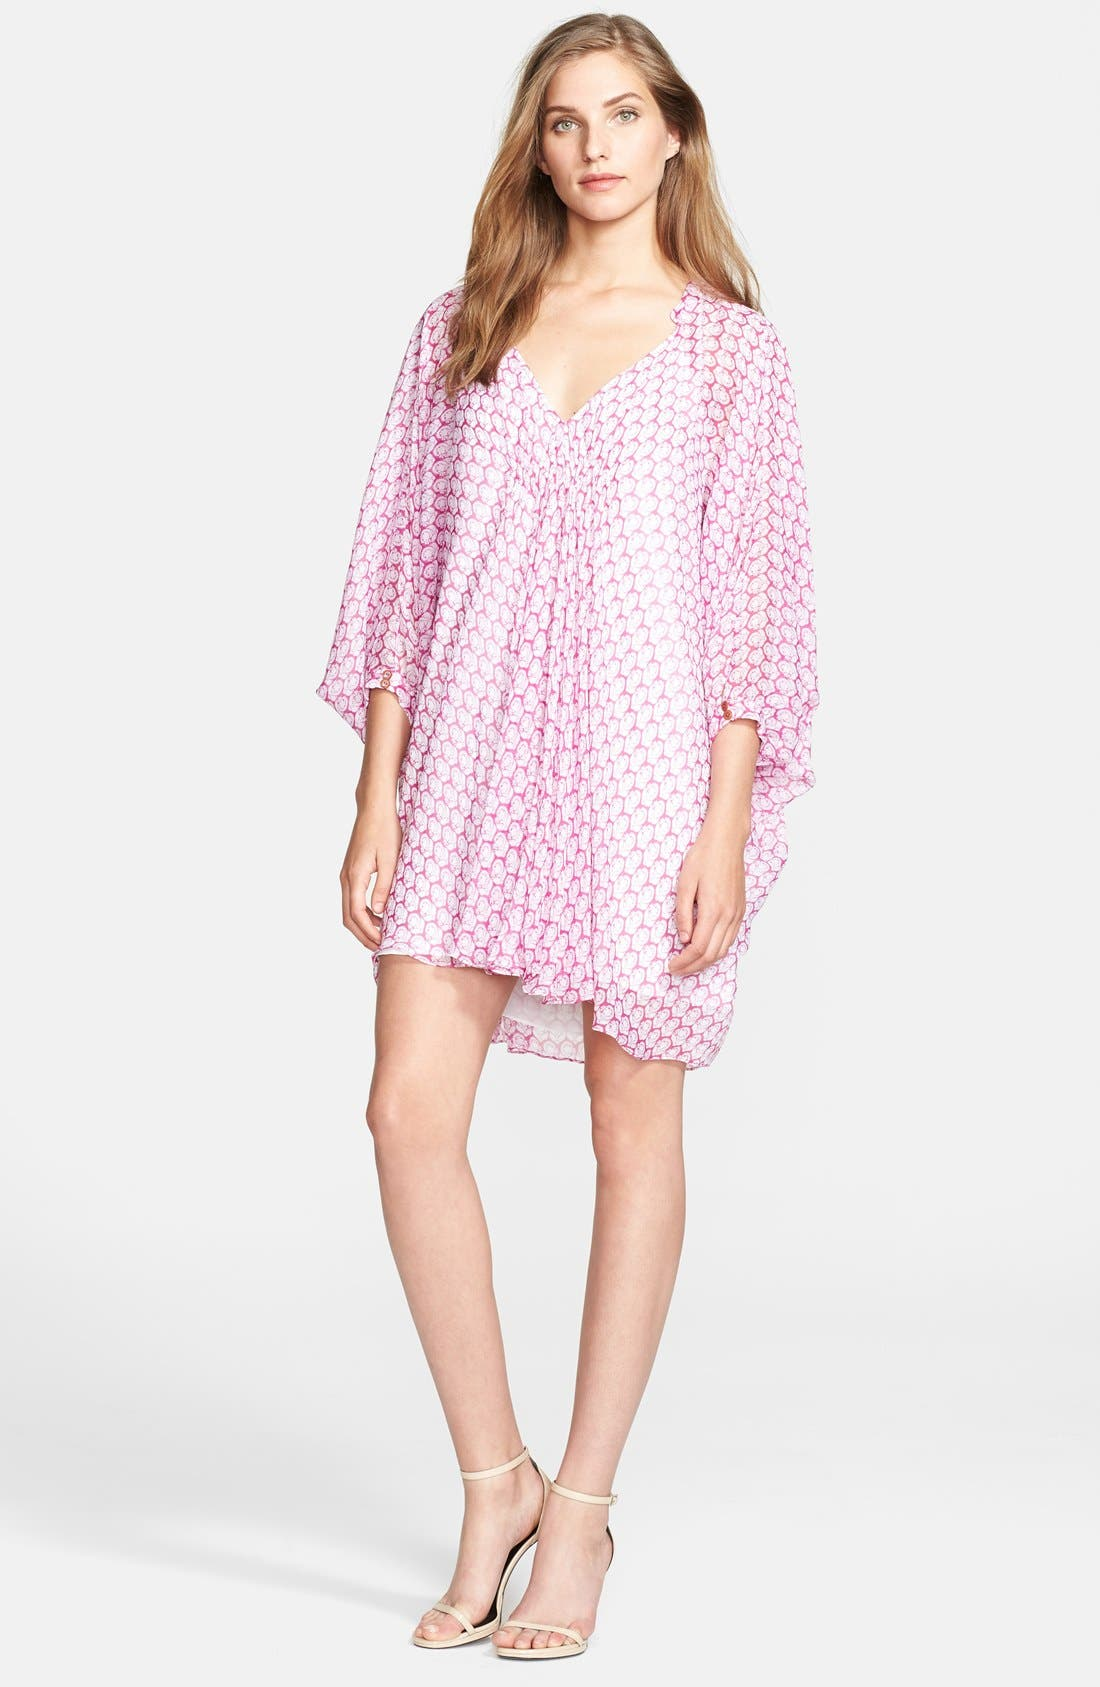 Main Image - Diane von Furstenberg 'Fleurette' Stretch Silk Tunic Dress